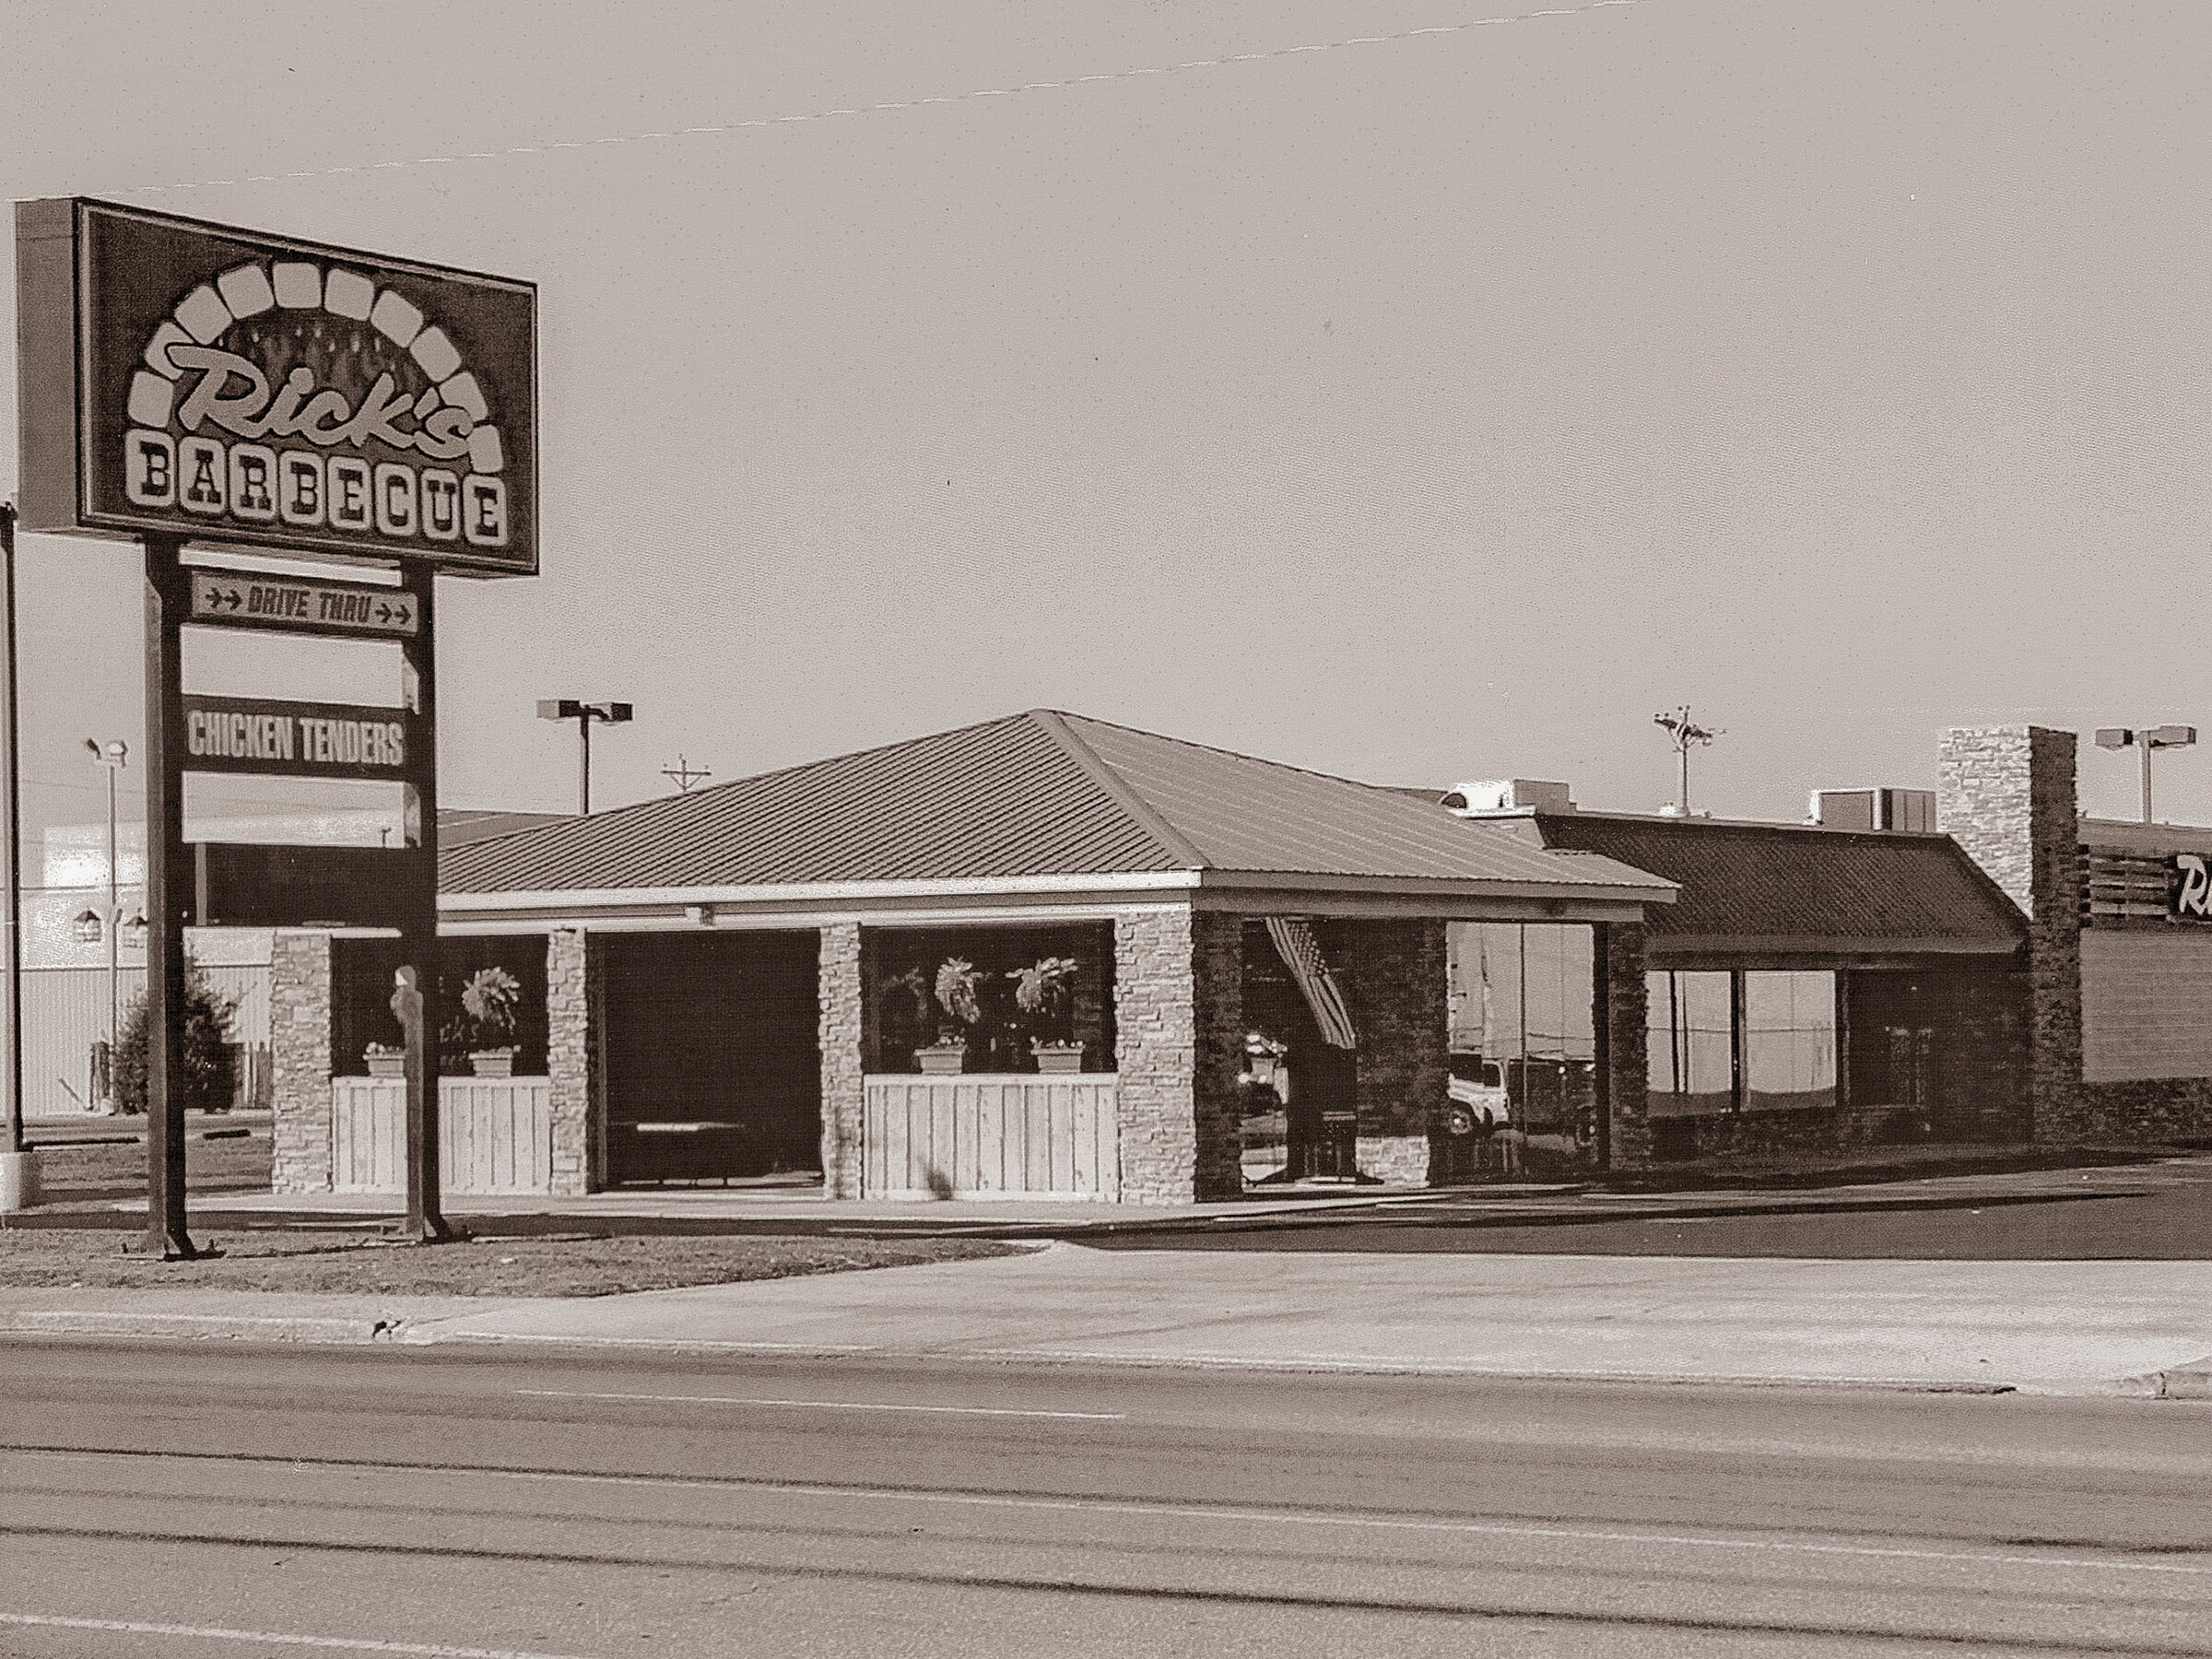 2006 - THE CURRENT RICK'S BARBECUE IN LAWRENCEBURG IS LOCATED AT 1507 NORTH LOCUST AVENUE